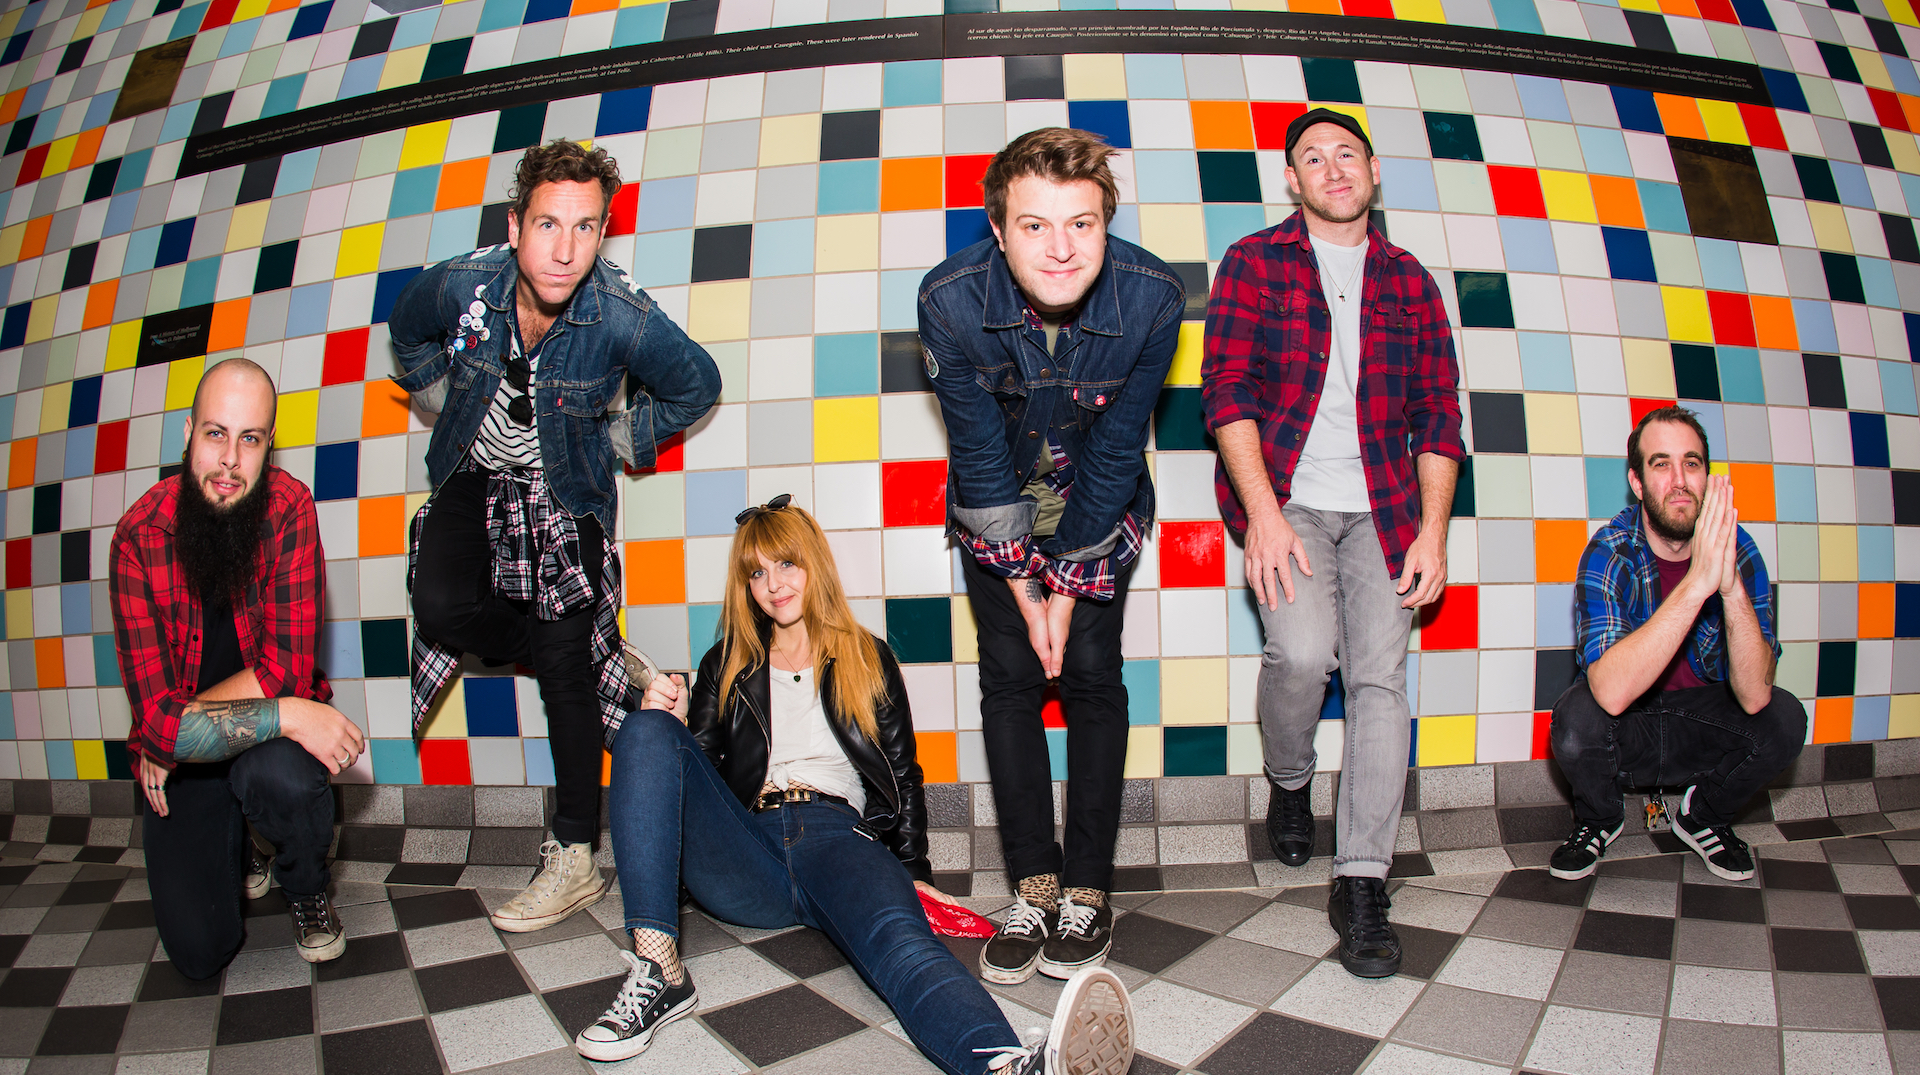 Josh Hogan Of The Mowgli's On Post-Show Rituals, Musical Inspirations, And Friendship